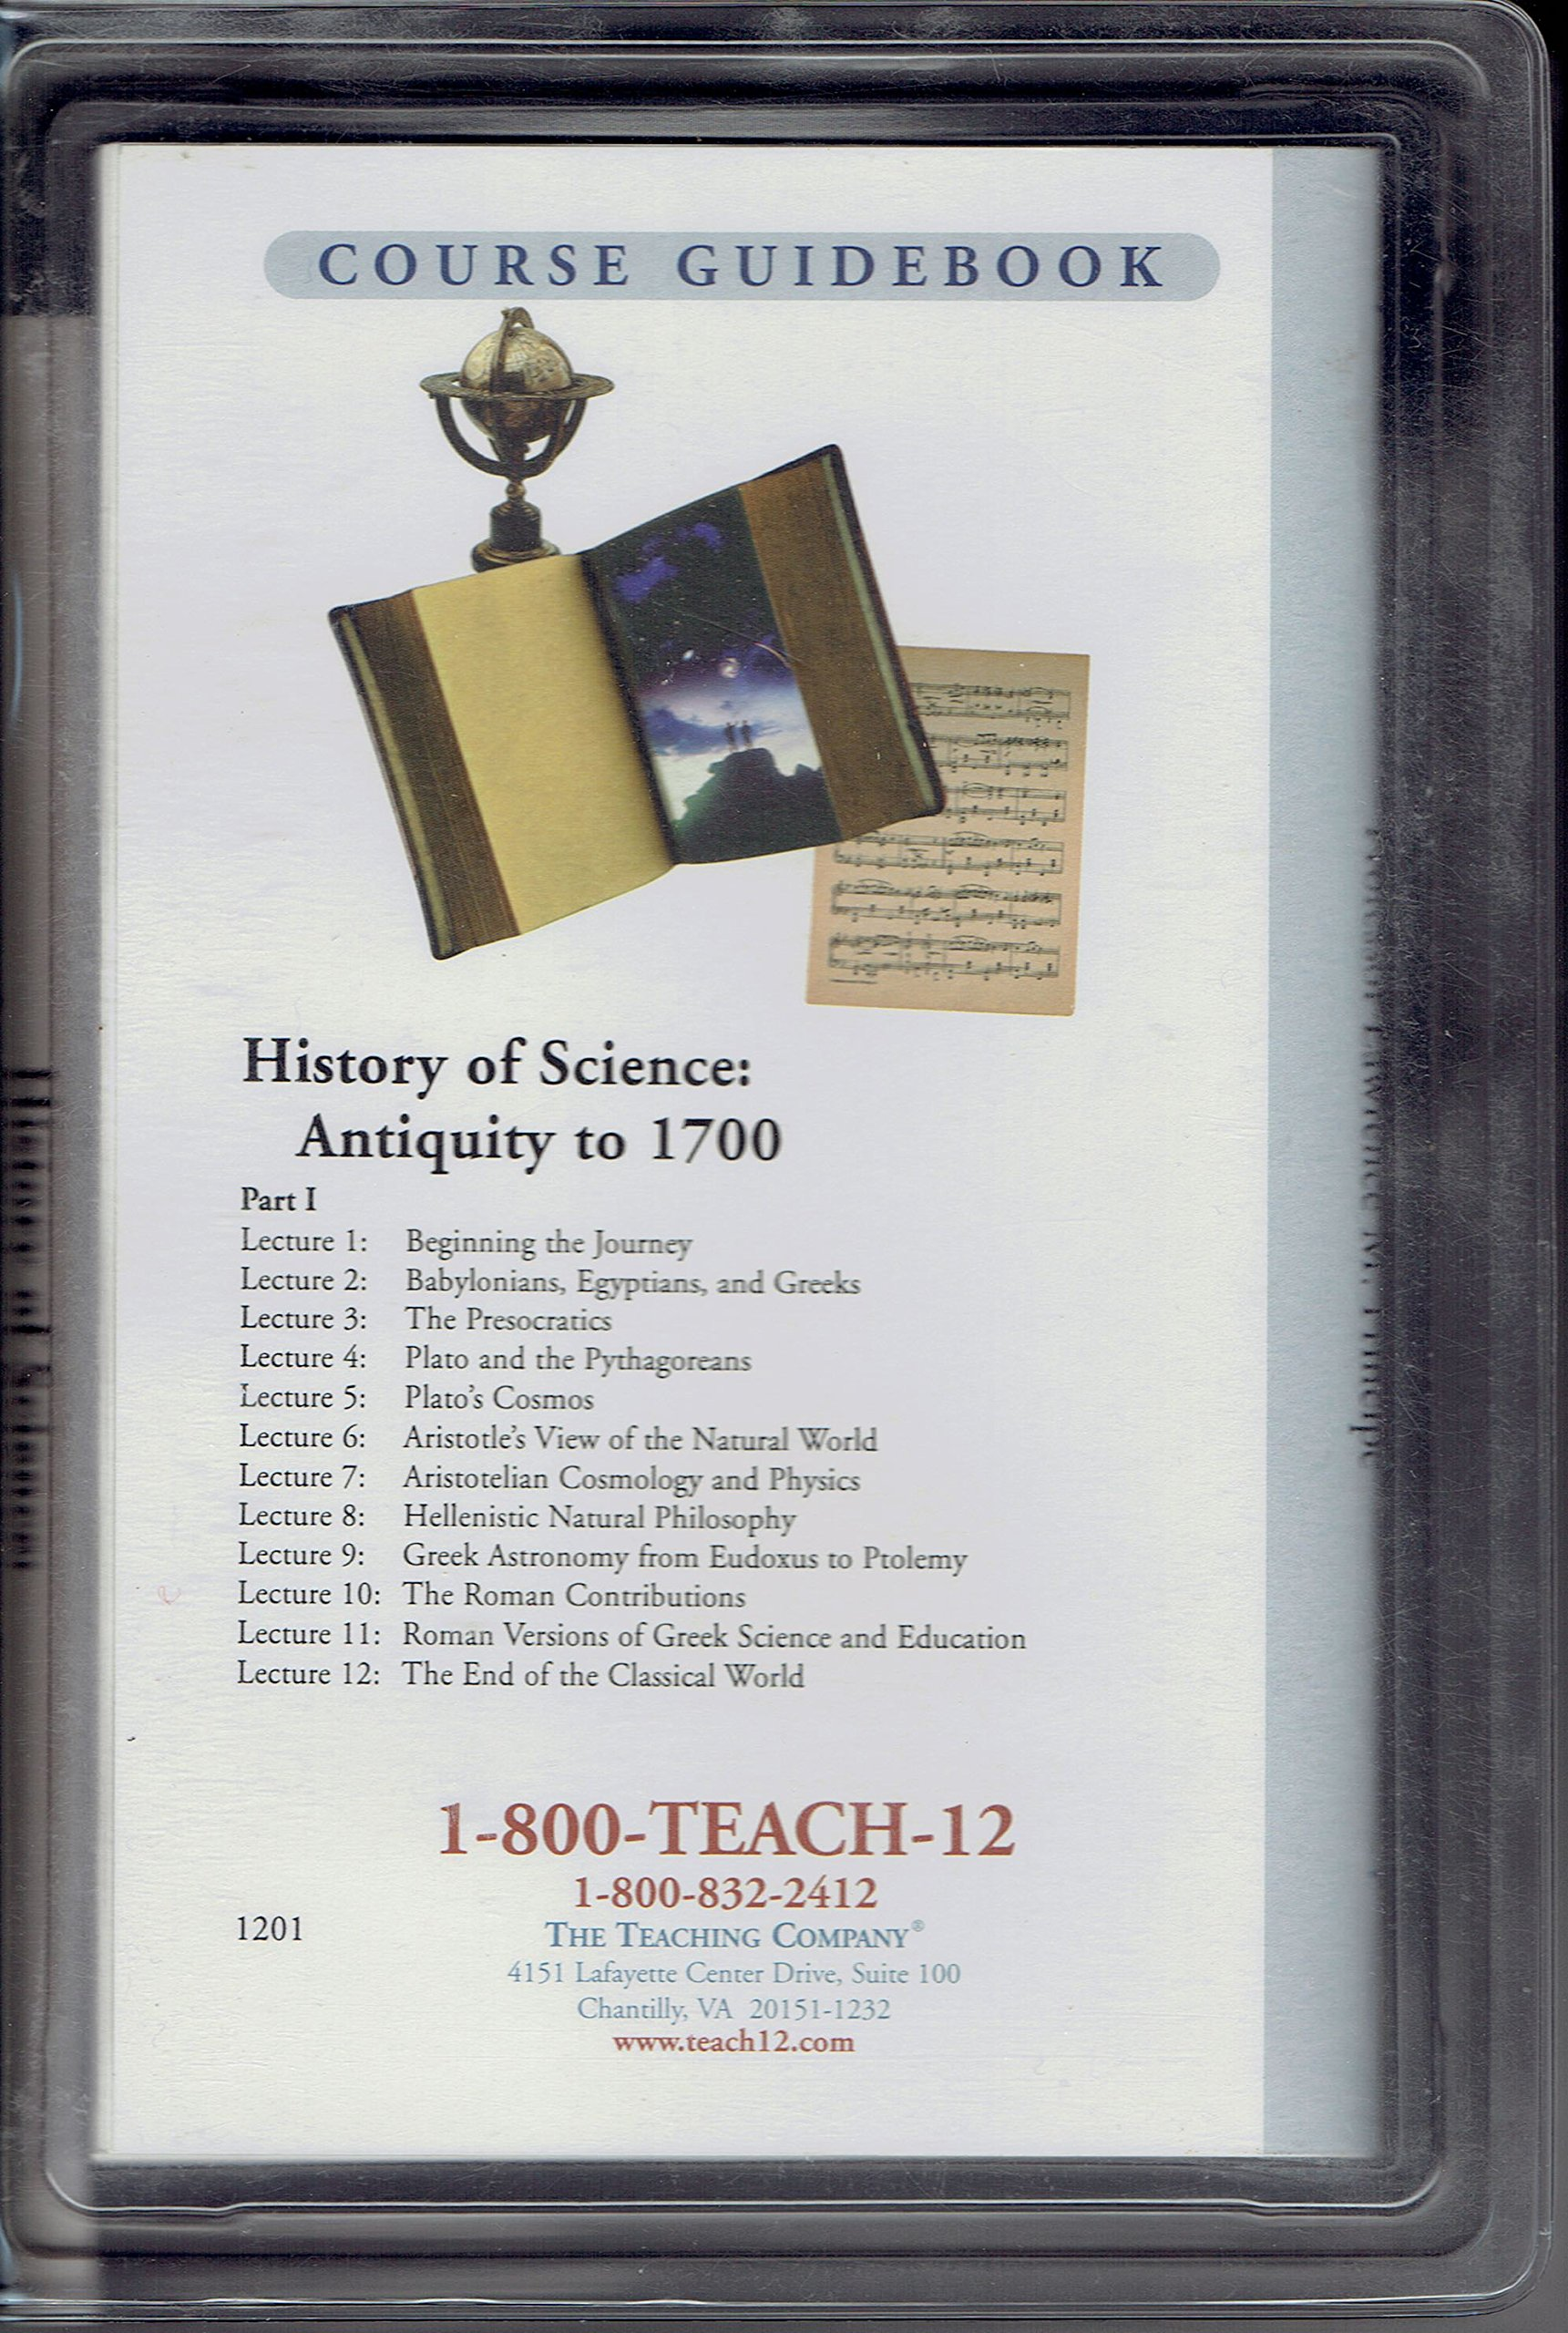 History of Science: Antiquity to 1700 - The Great Courses: Ancient & Medieval History (Audio CDs)